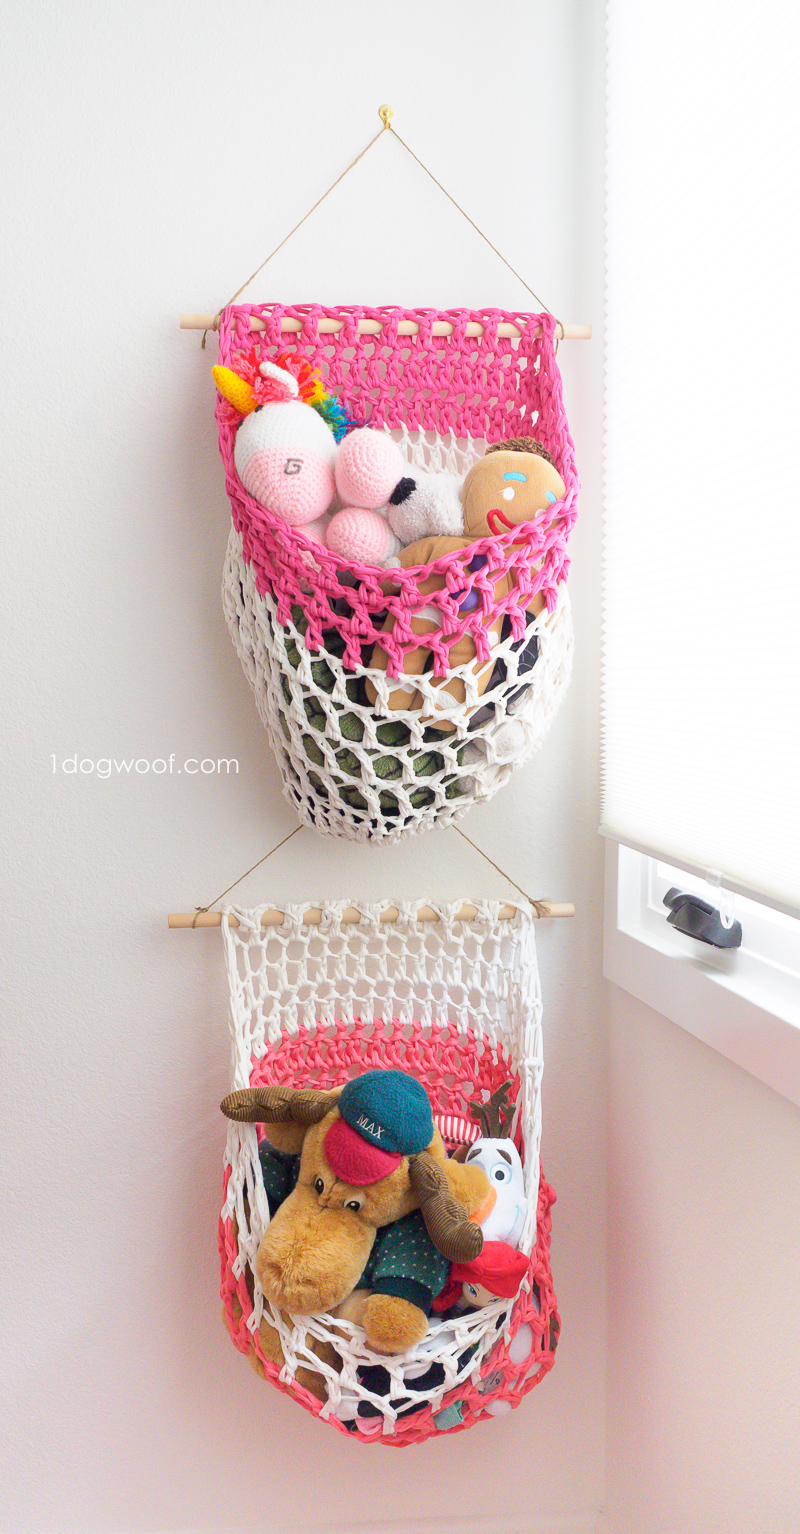 Mesh t-shirt yarn hanging basket crochet pattern. www.1dogwoof.com